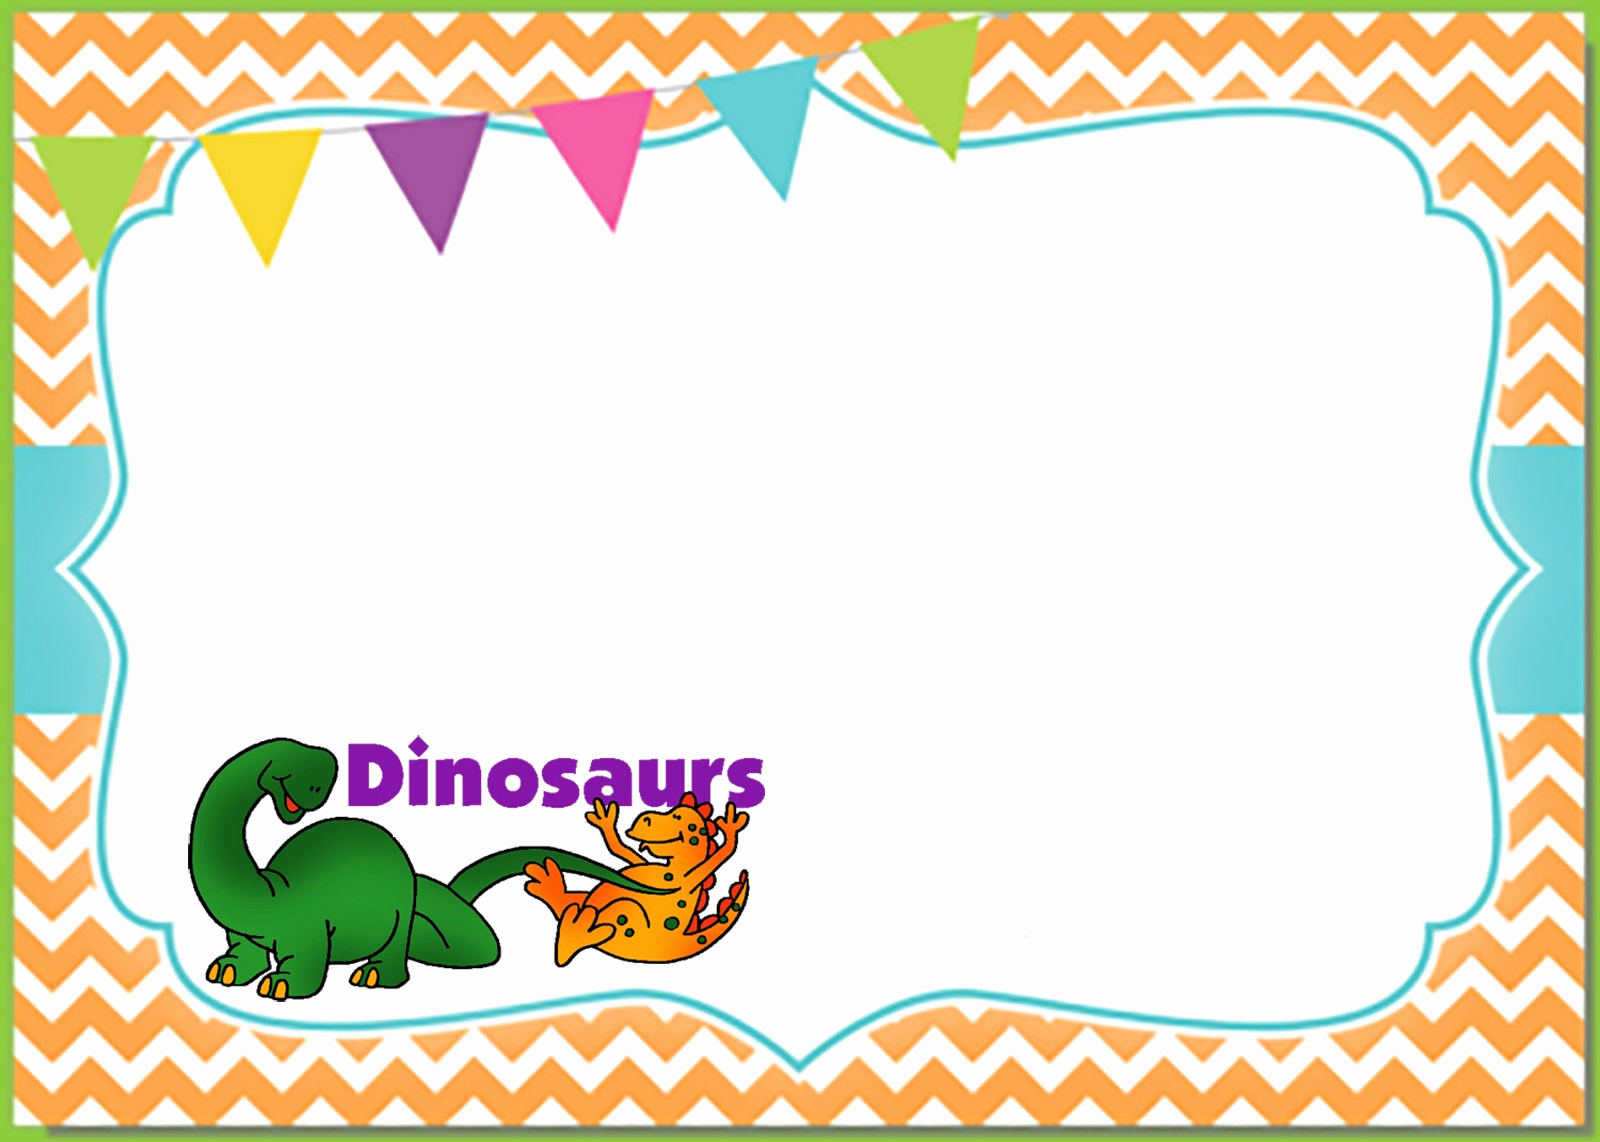 Dinosaur Birthday Invitation Template Lovely 6 Printable Invitation Templates for A Dinosaur Birthday